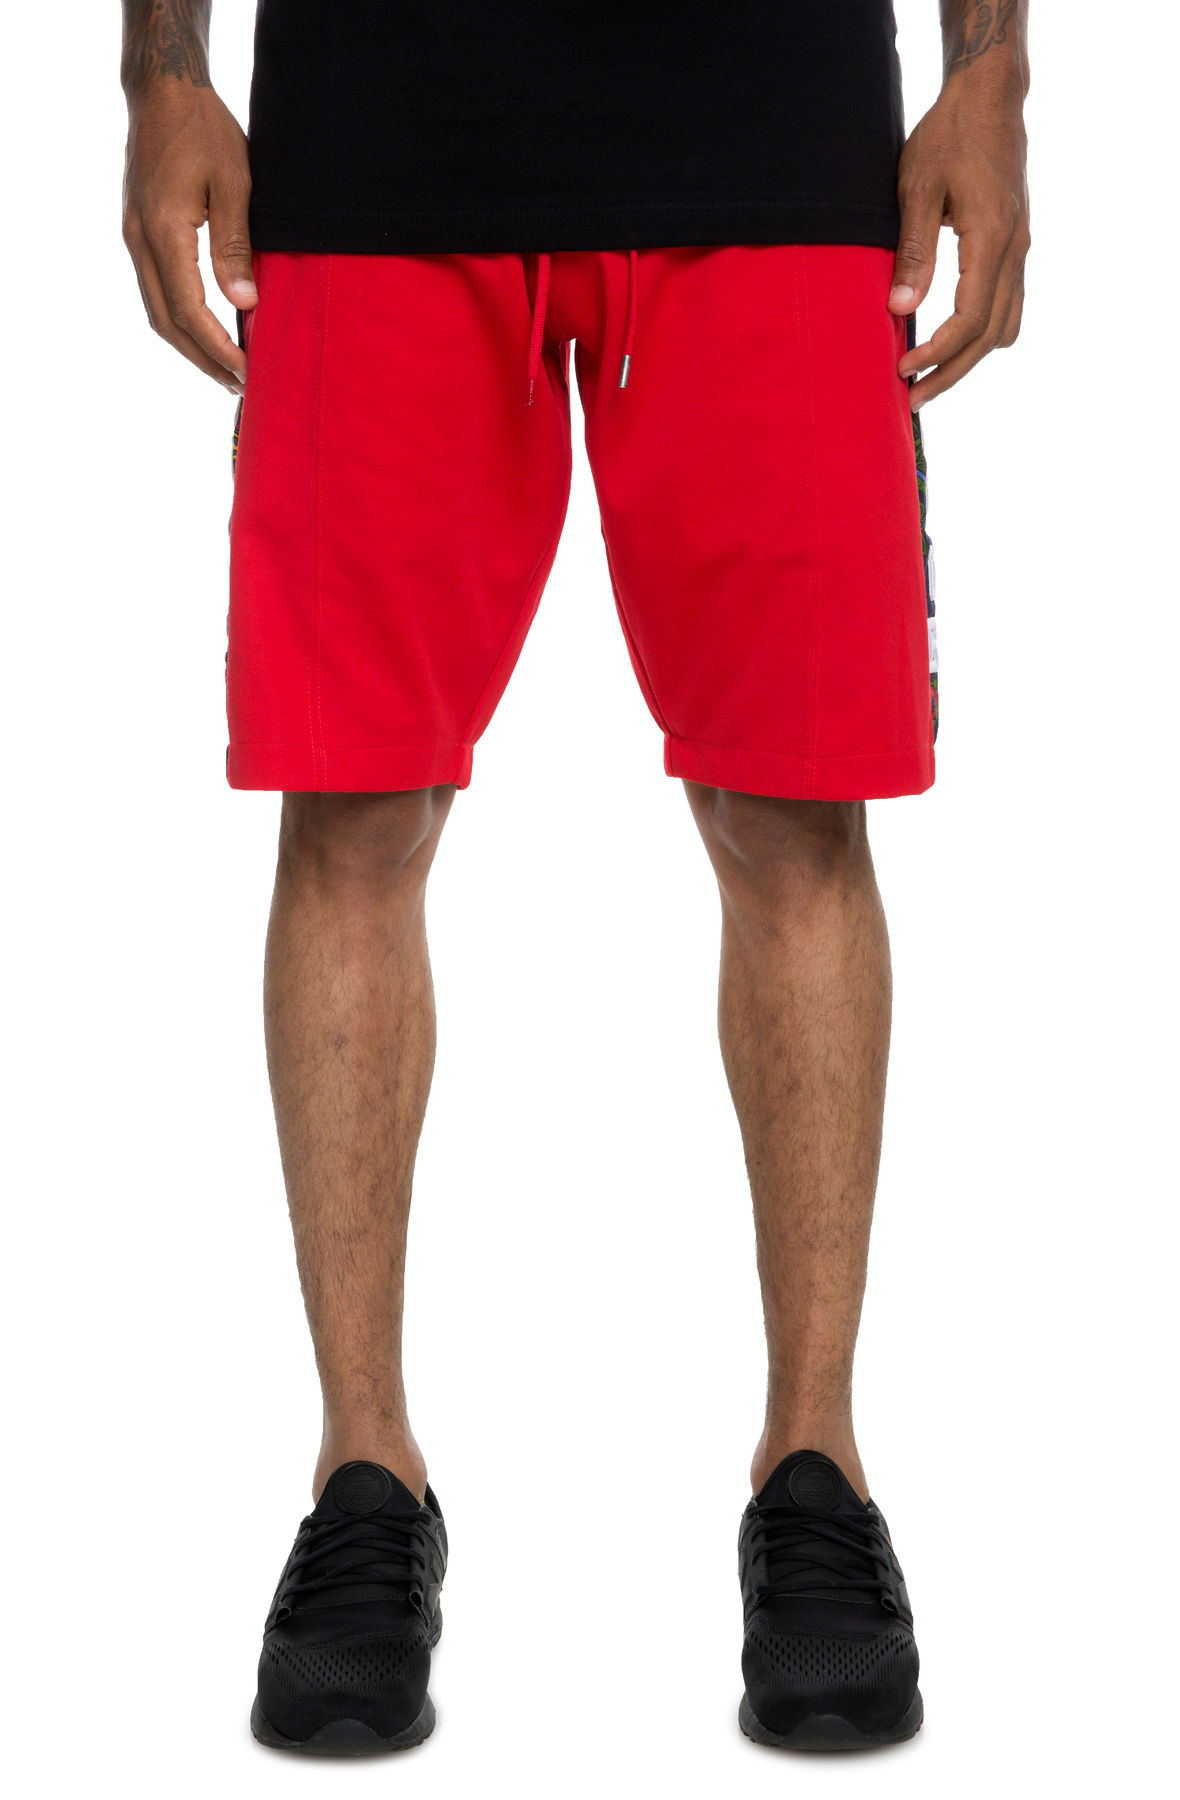 The Pilot Shorts in Red